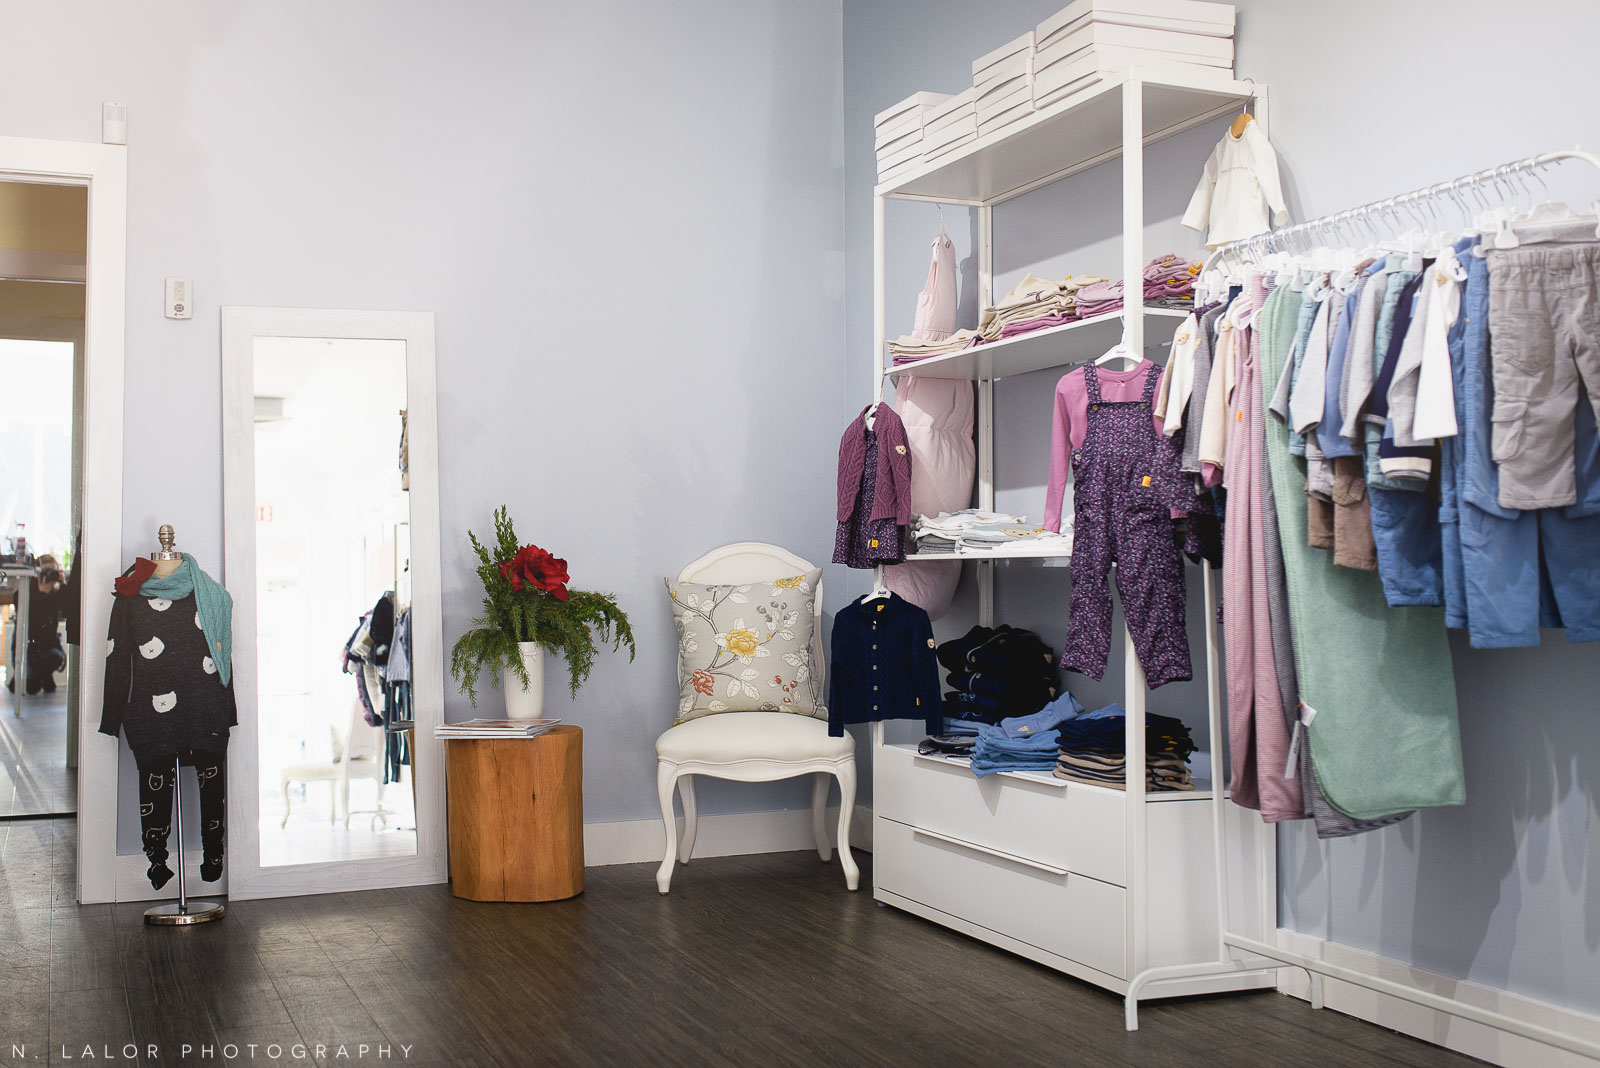 Ella & Henry children's clothing store in New Canaan. Photo by N. Lalor Photography.